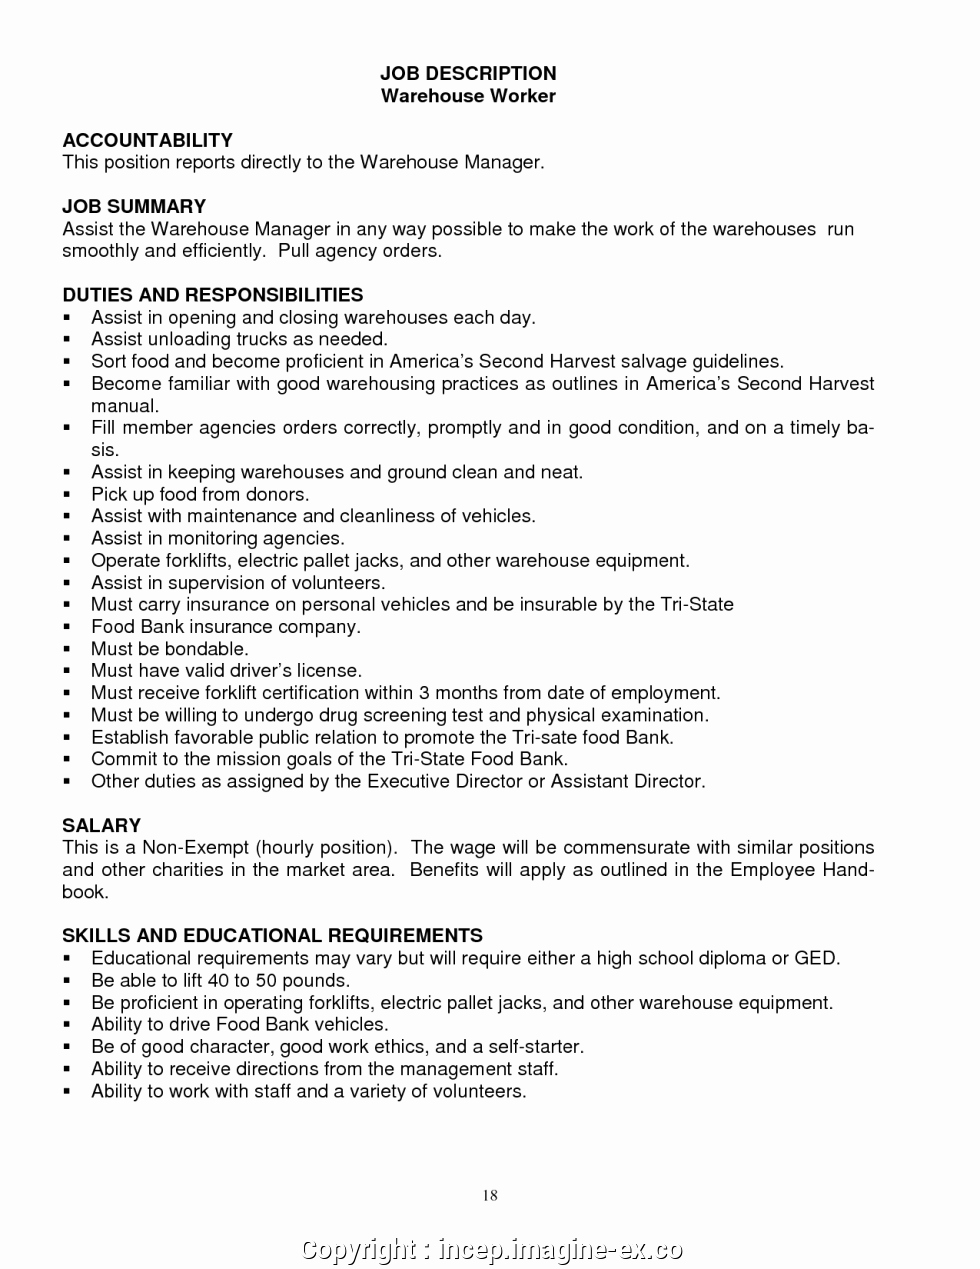 Resume for A Warehouse Job Best Of Free Warehouse Description for Resume Warehouse Job